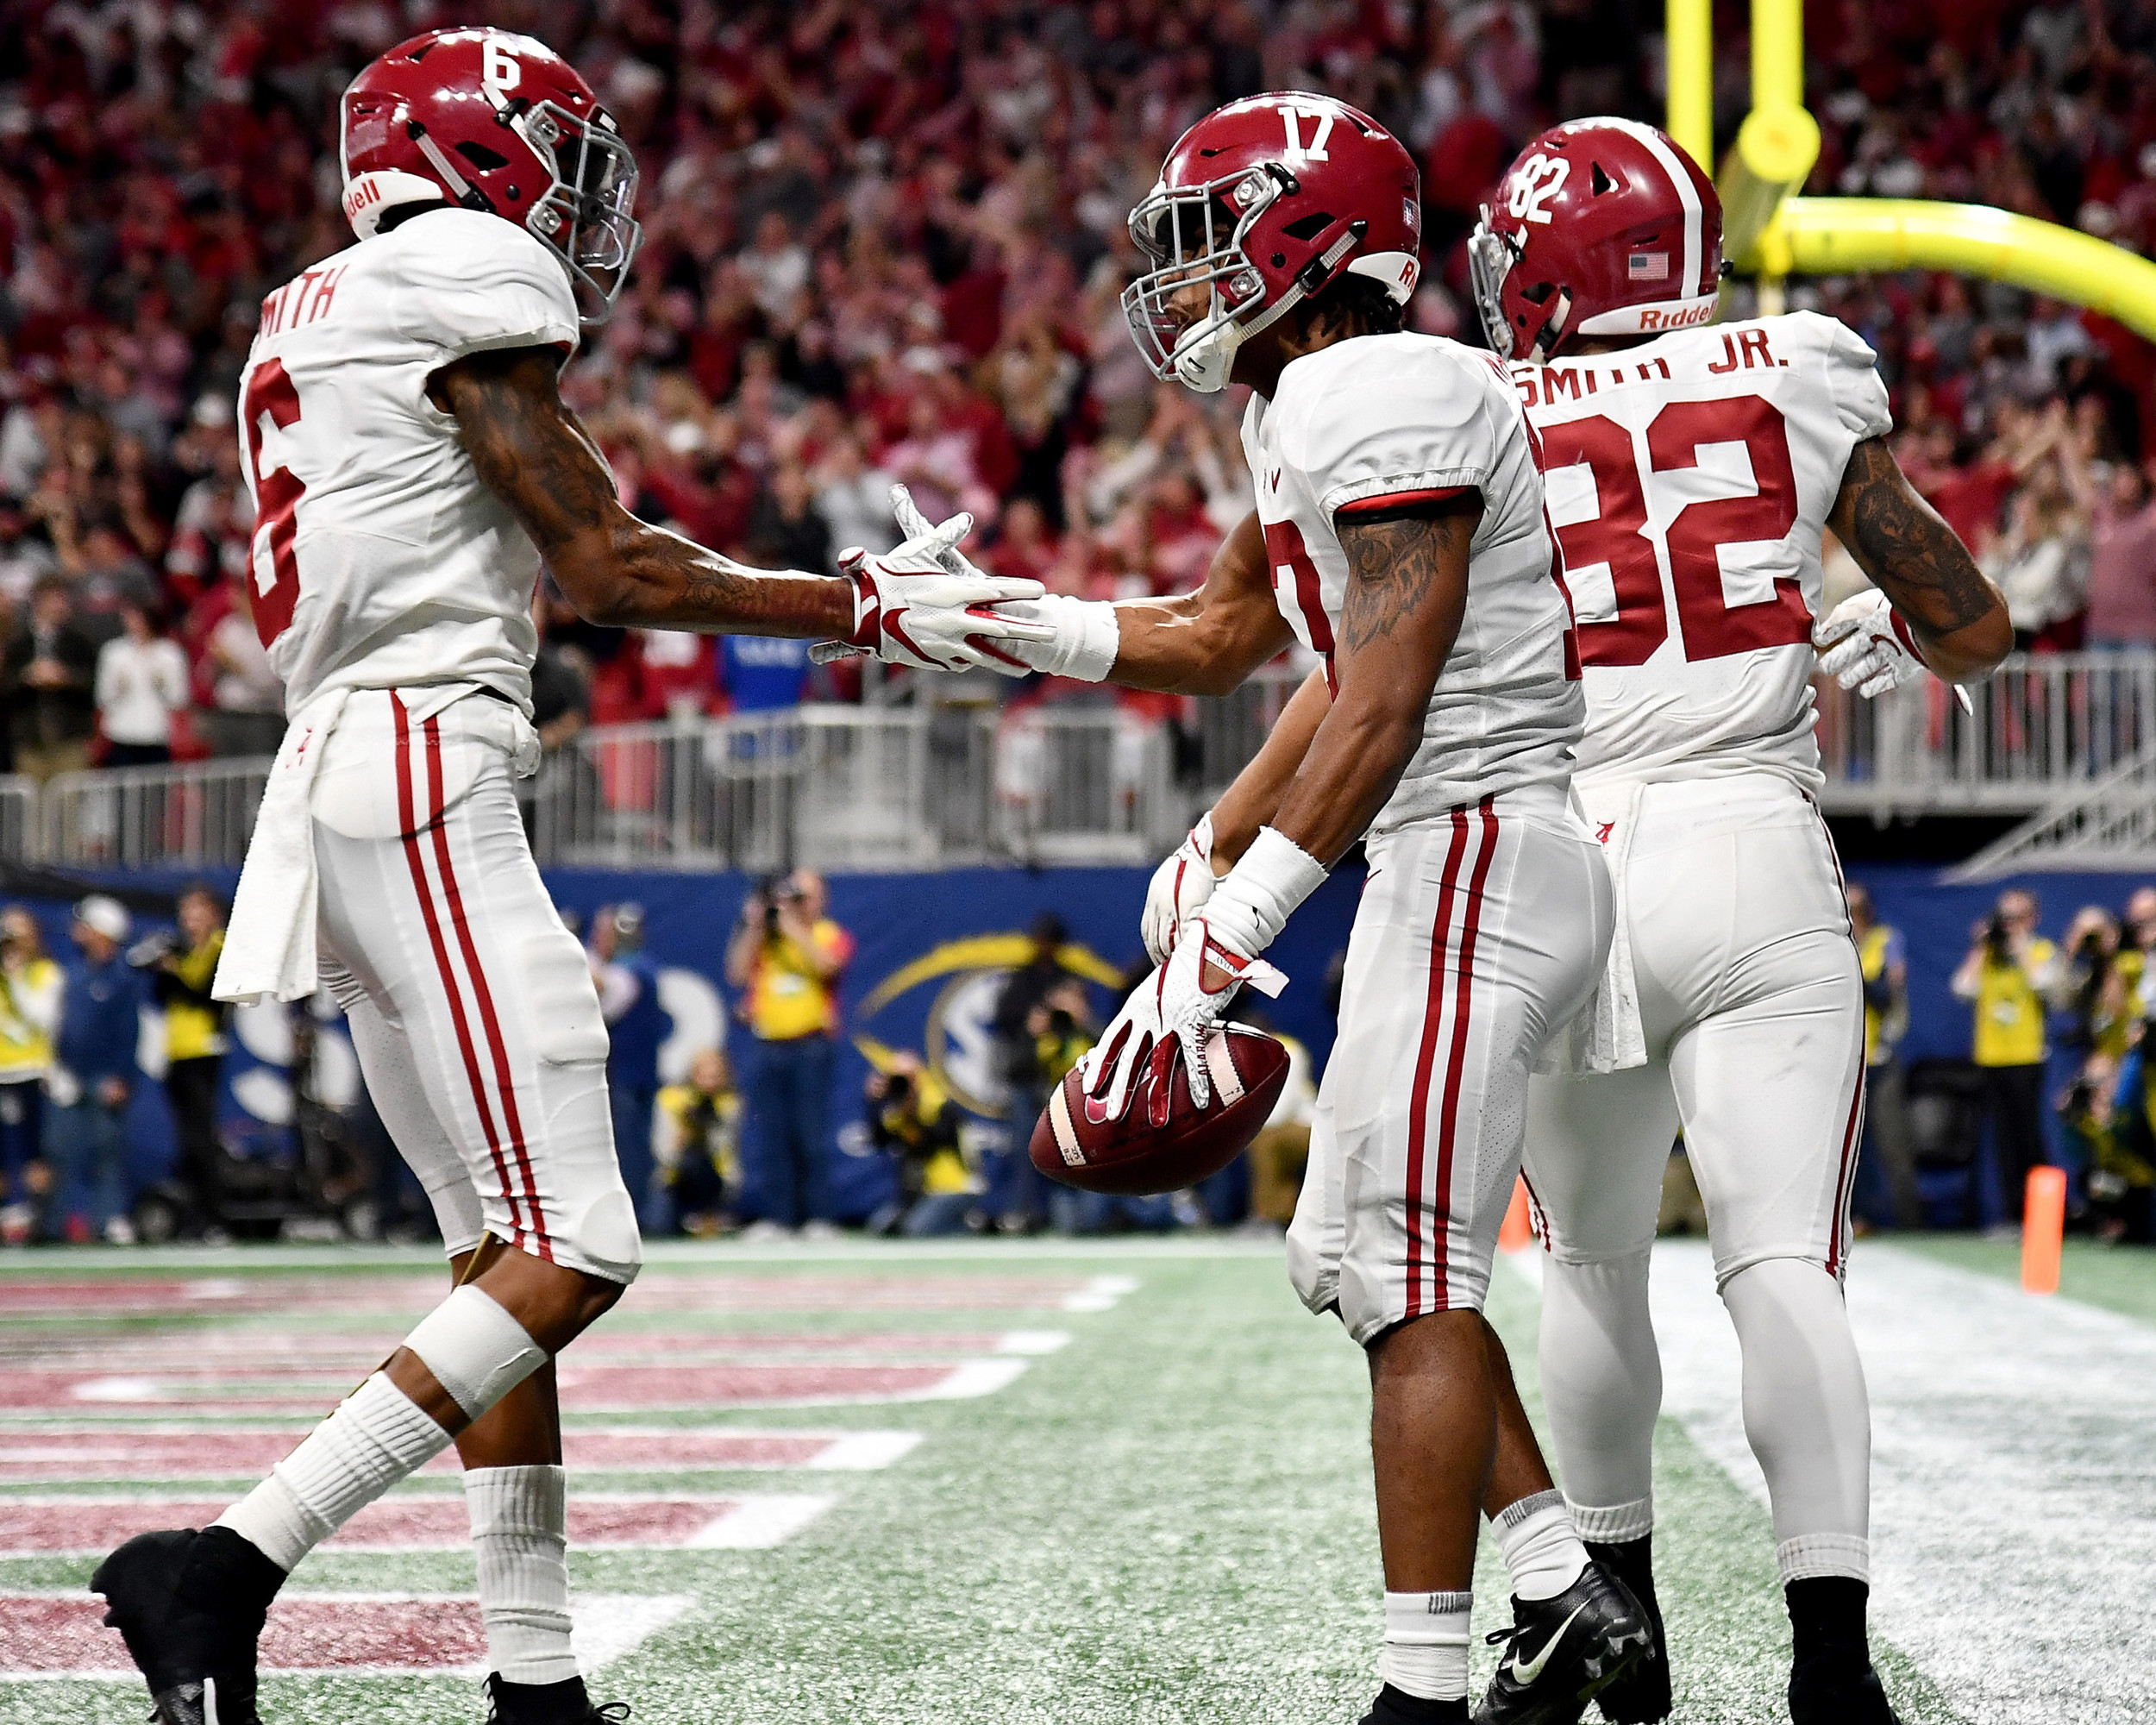 Alabama Crimson Tide wide receiver Jaylen Waddle (17) celebrates a touchdown during the second half of the 2018 SEC Championship football game against the Georgia Bulldogs at Mercedes-Benz Stadium in Atlanta, Ga., on Dec. 1, 2018. Alabama wins 35-28. (Photo by Lee Walls)